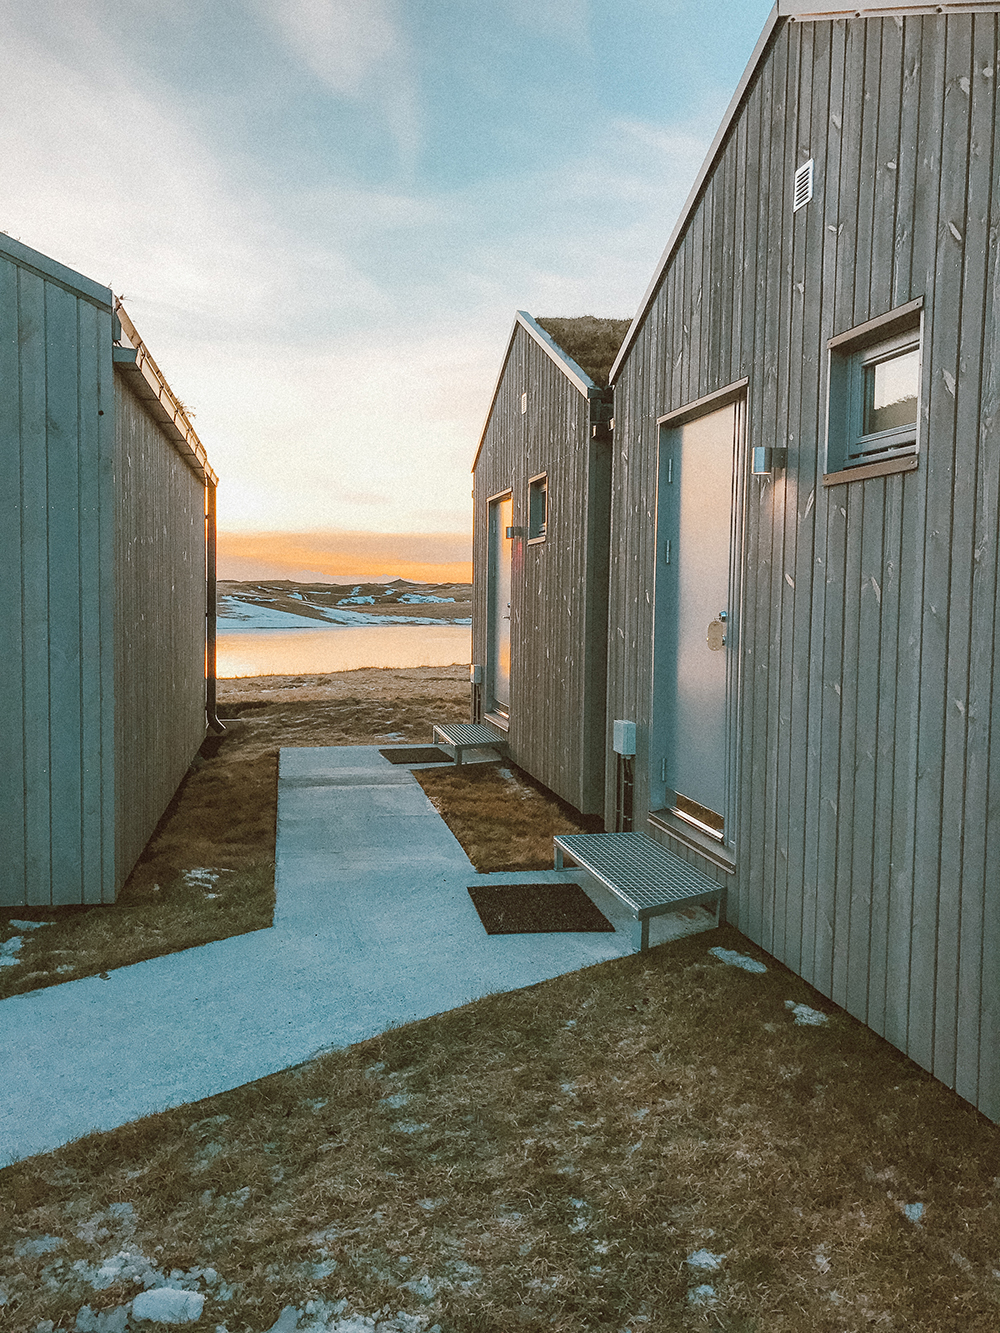 livvyland-blog-olivia-watson-travel-lifestyle-blogger-iceland-road-trip-what-to-do-pack-reykjavik-noken-travel-guide-where-to-stay-hotel